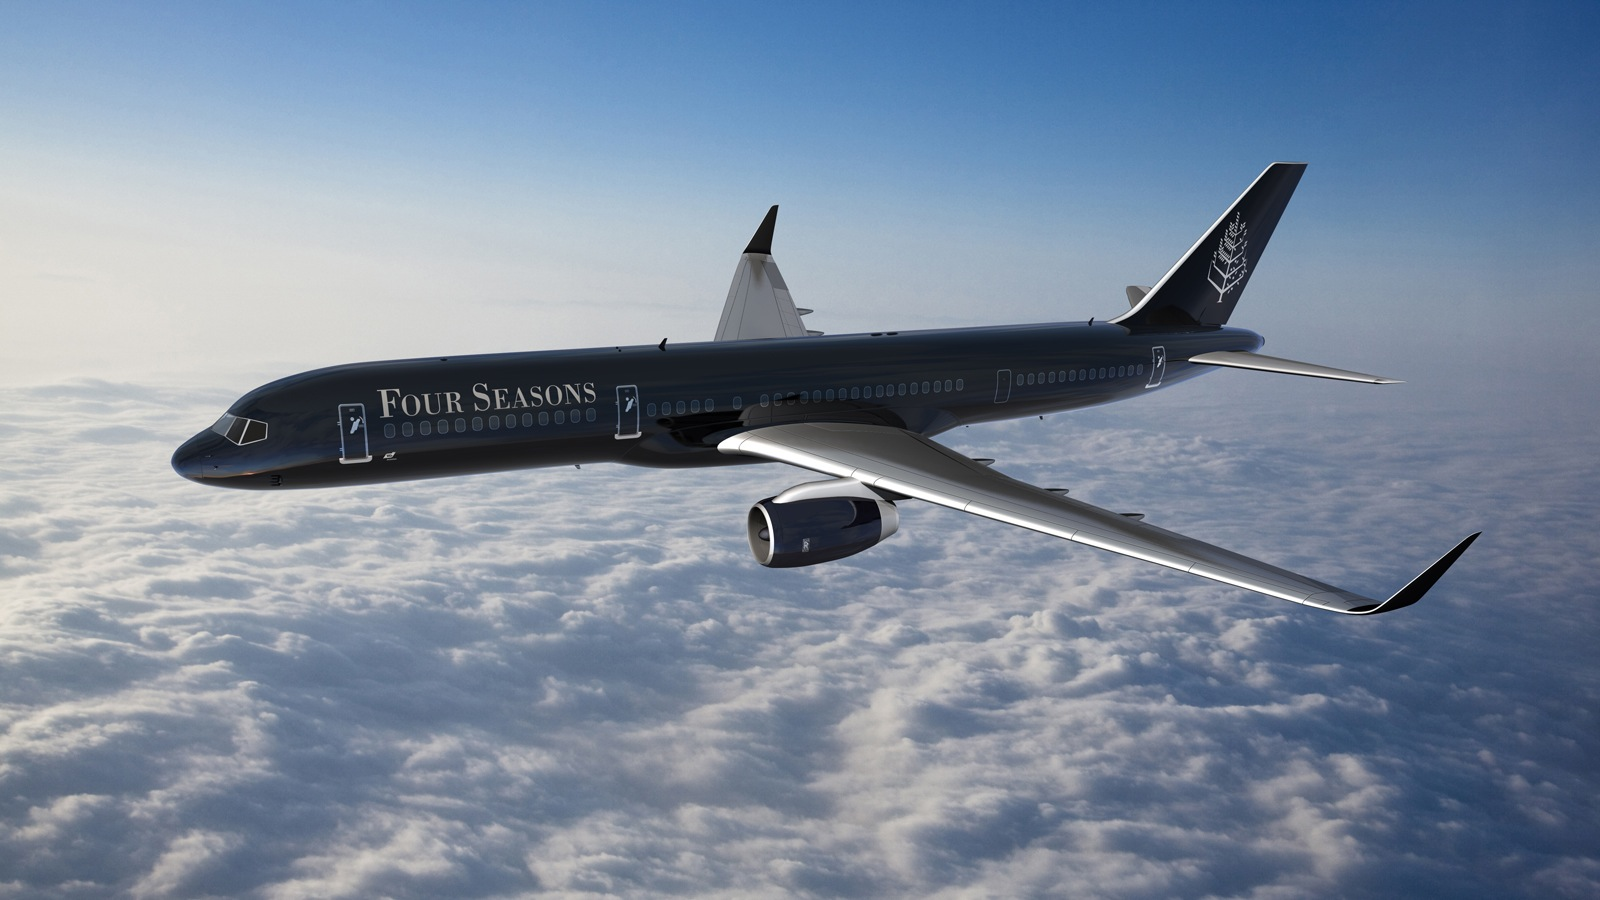 The Four Seasons' private jet will transport guests on its Around the World journeys.